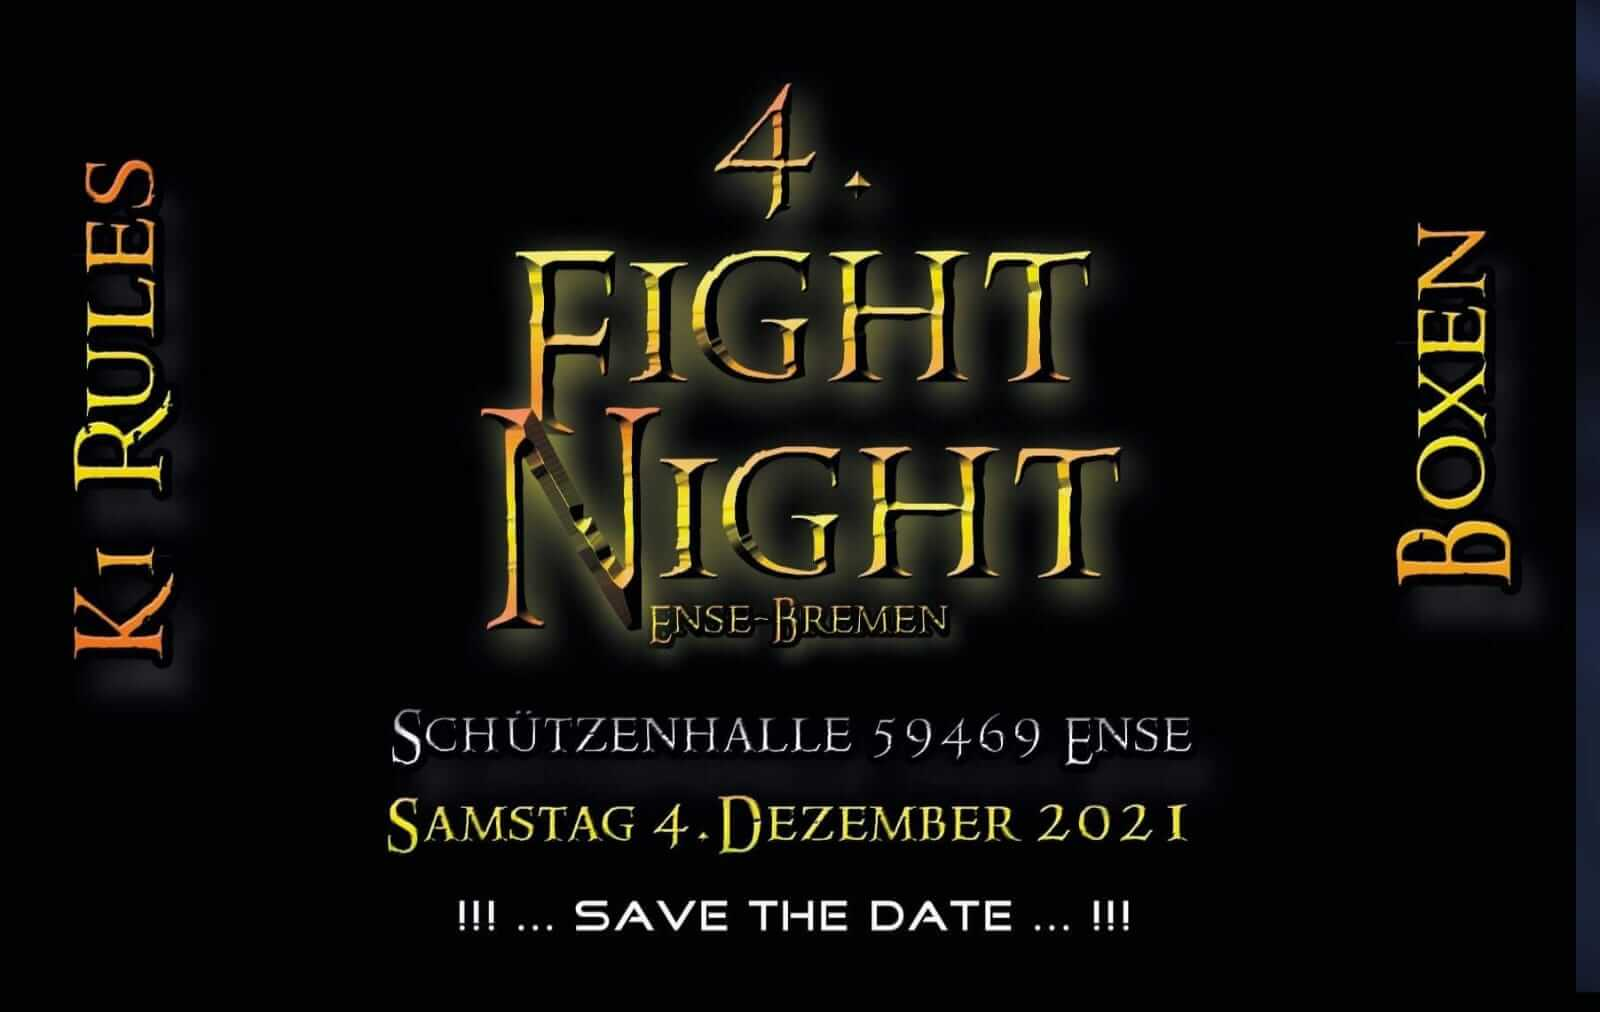 4te Fight Night in Ense Bremen Teaser - Save the date